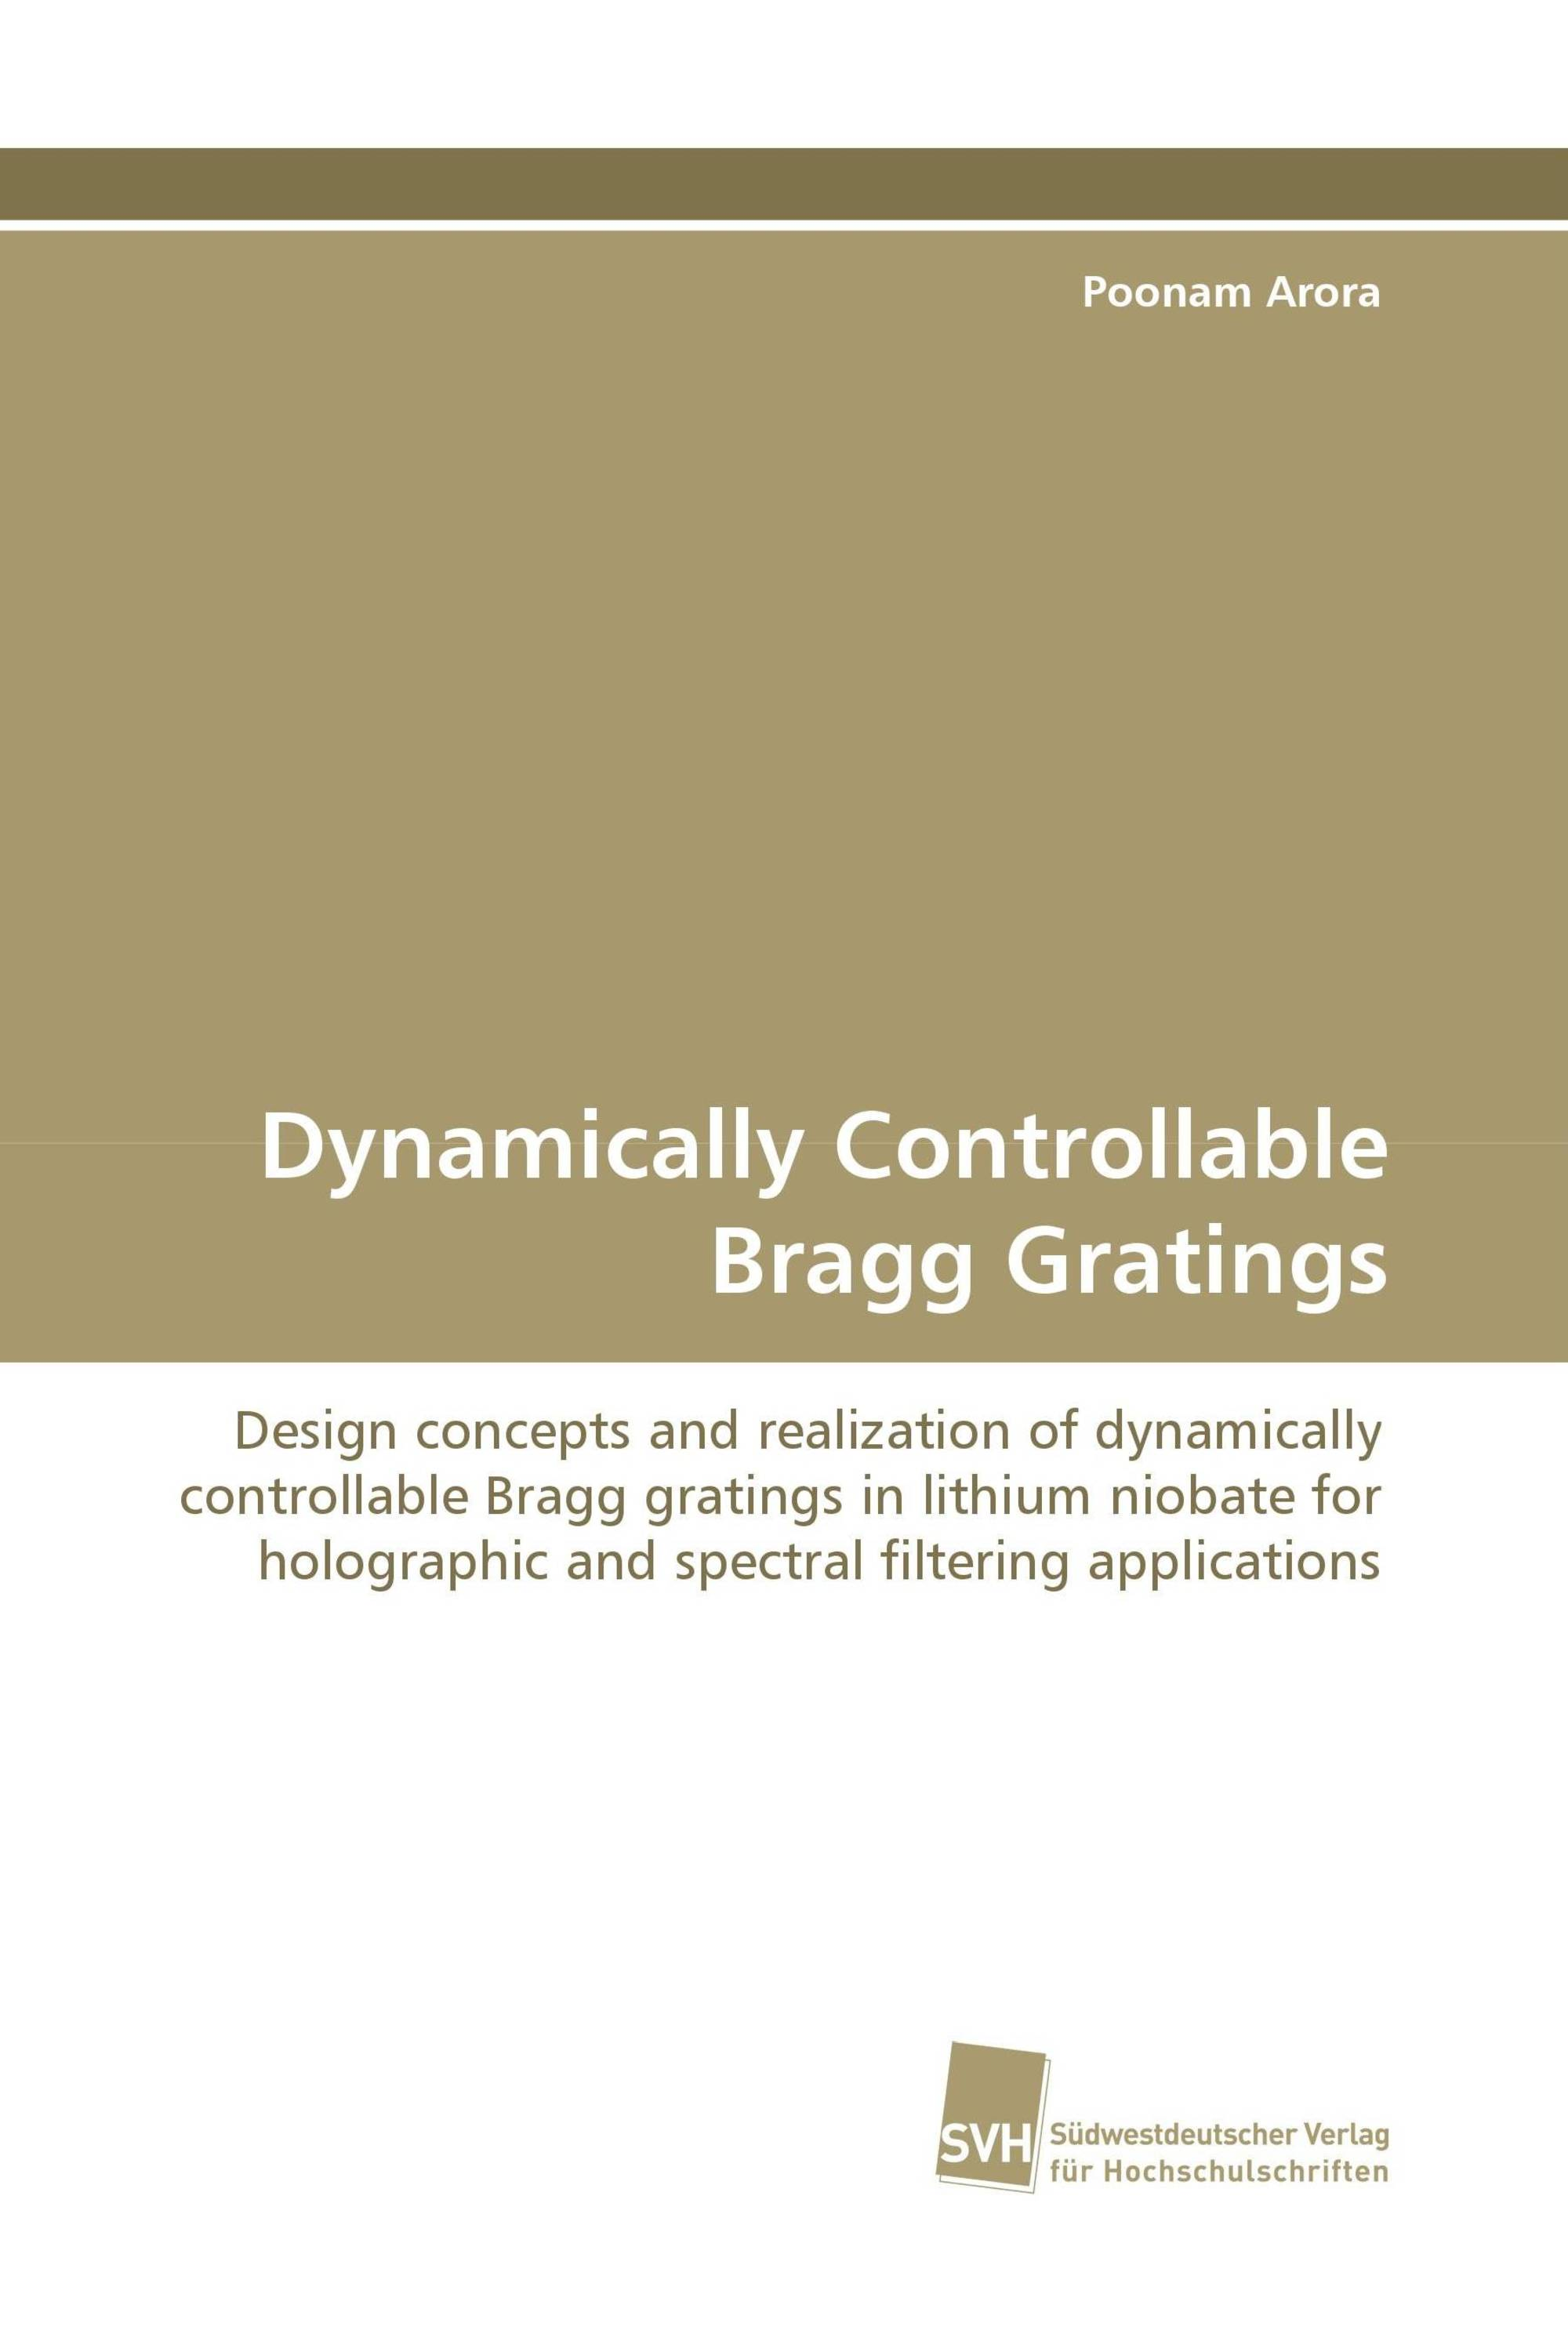 Dynamically Controllable Bragg Gratings